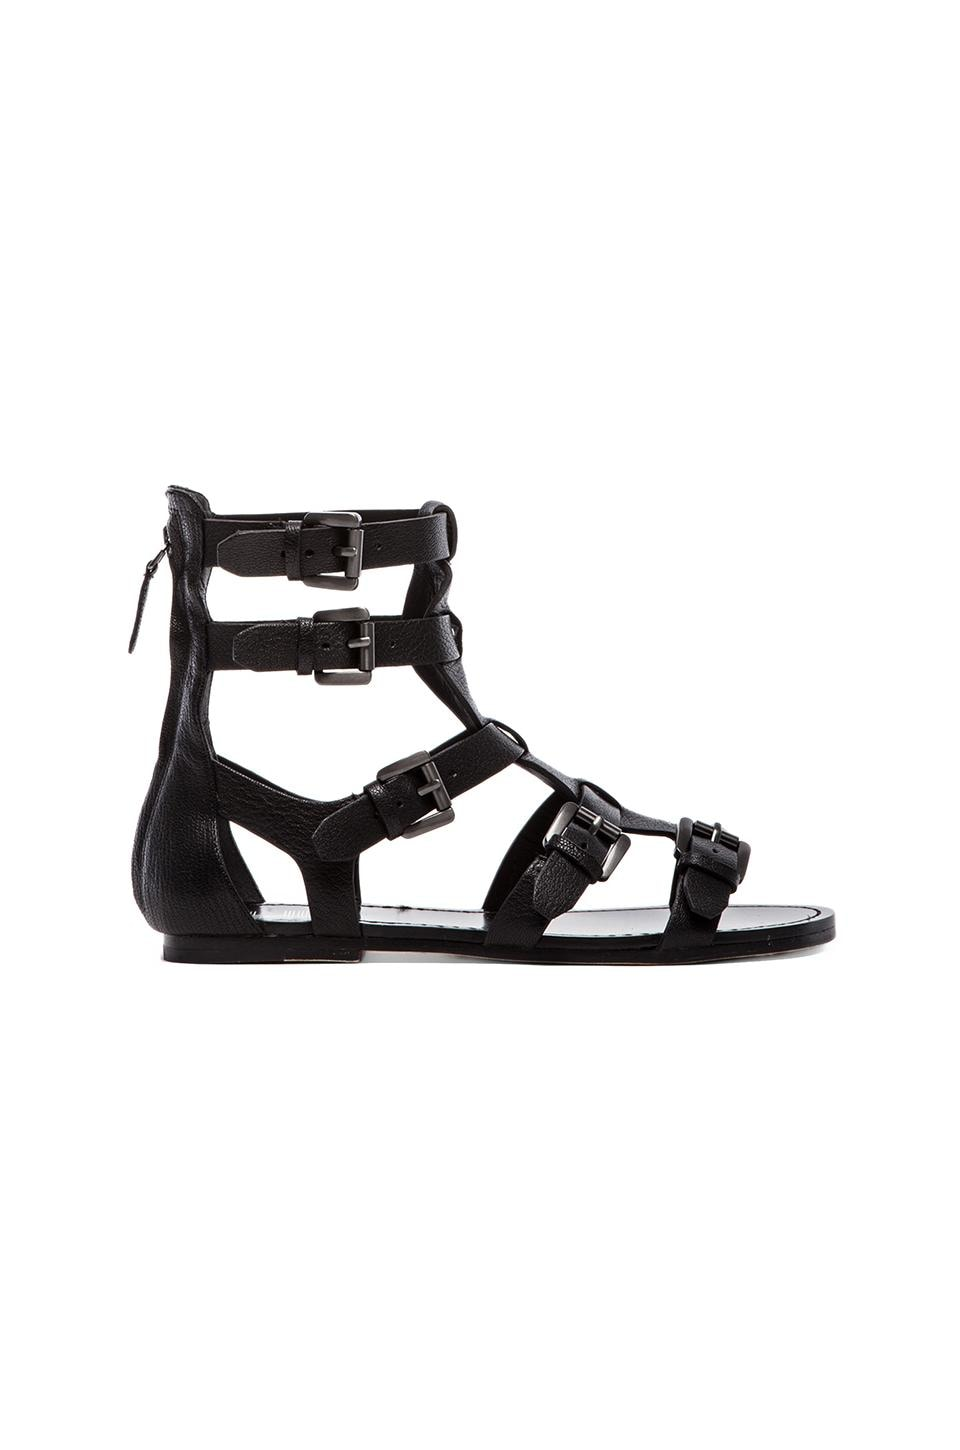 Belle by Sigerson Morrison Bianca Sandal in Black